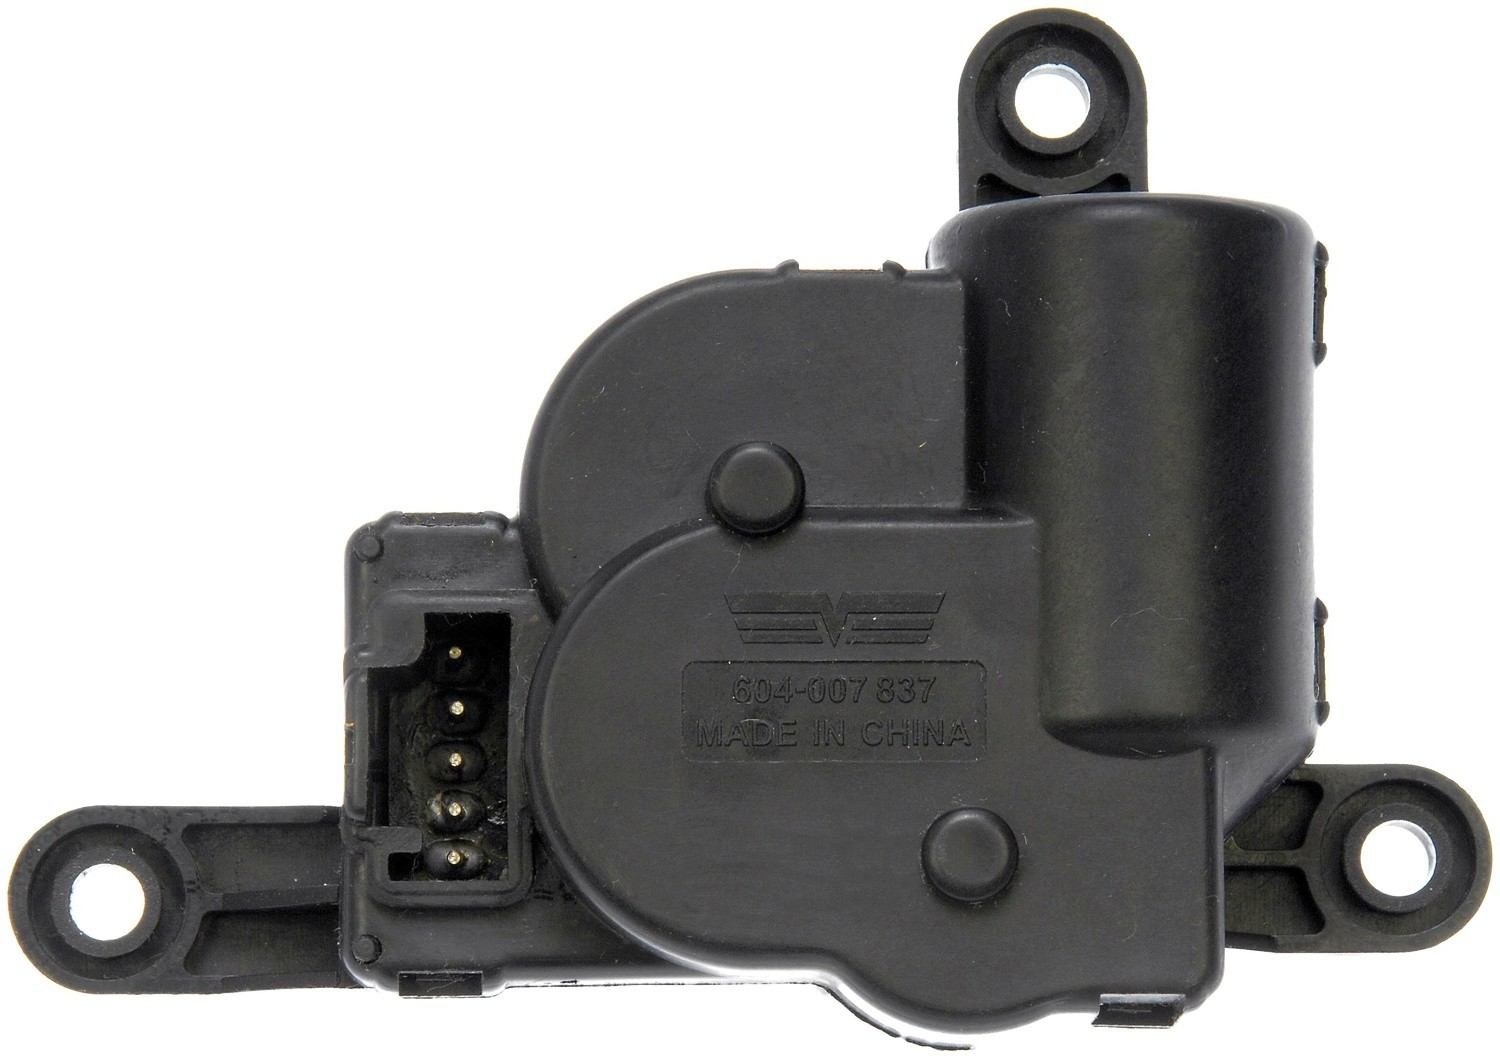 DORMAN OE SOLUTIONS - HVAC Heater Blend Door Actuator - DRE 604-007